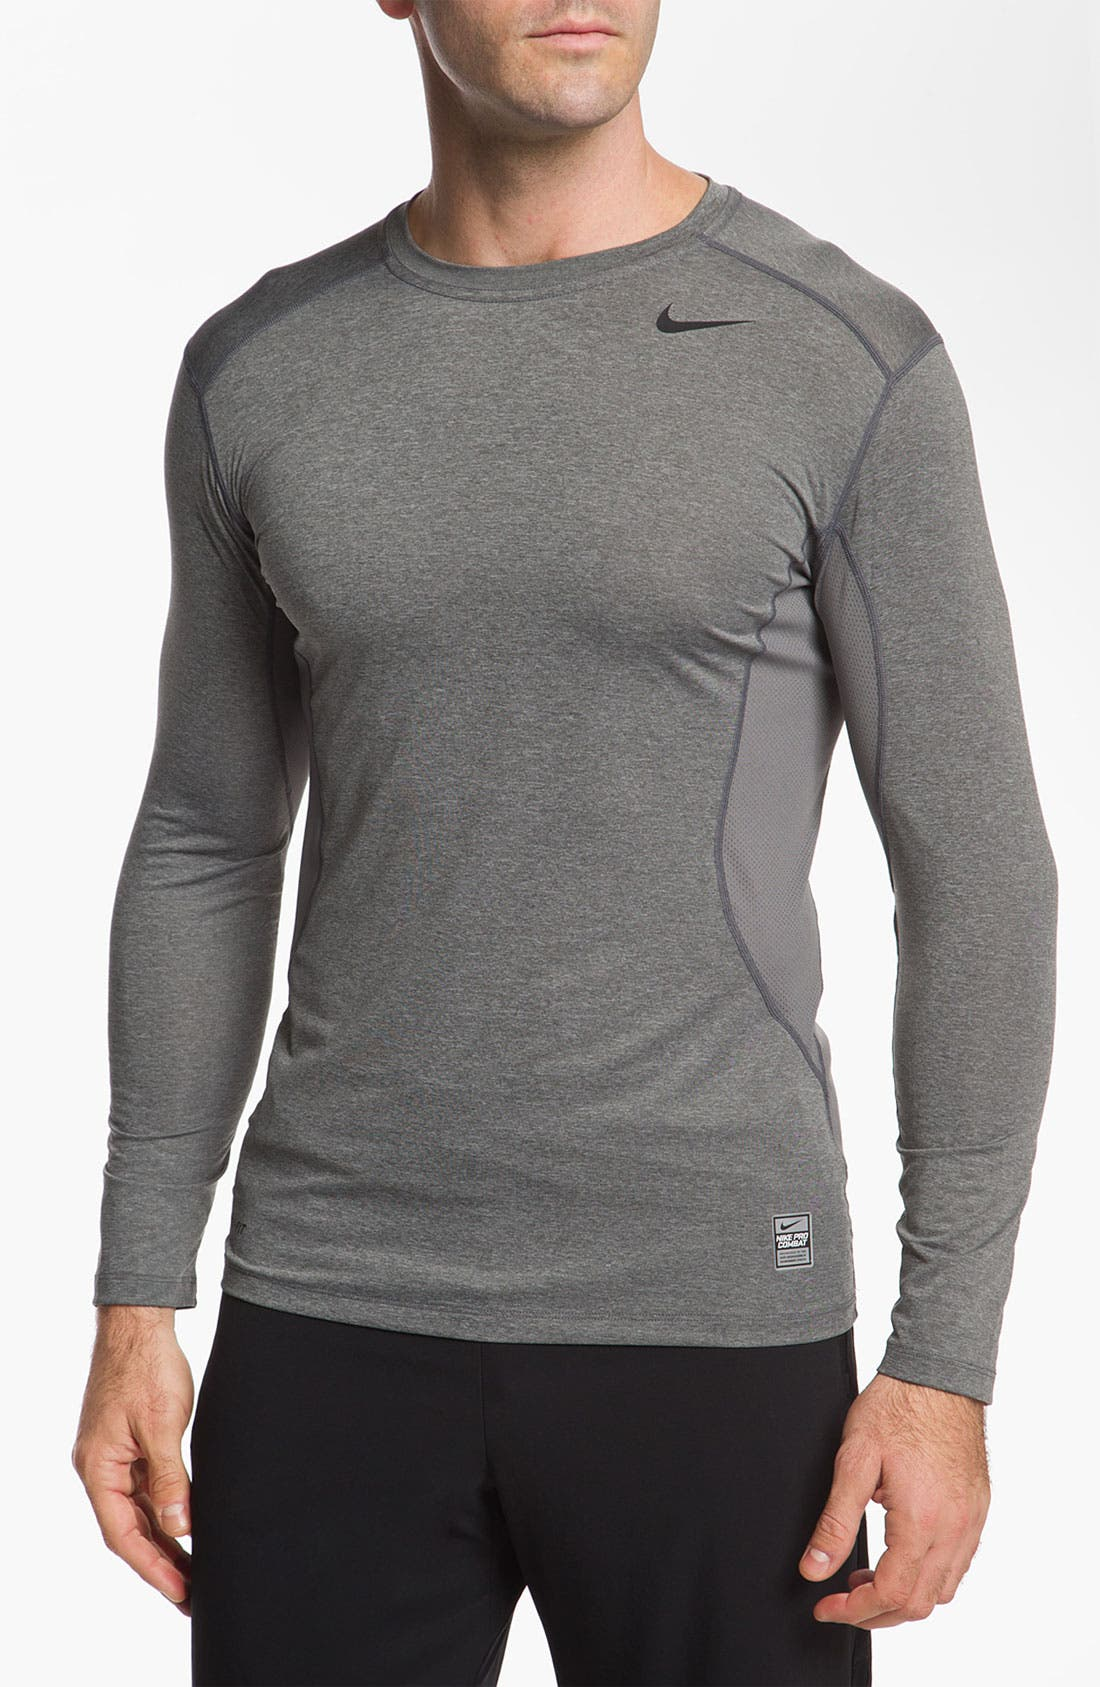 Alternate Image 1 Selected - Nike 'Core 2.0' Fitted Long Sleeve T-Shirt (Regular Retail Price: $32.00)